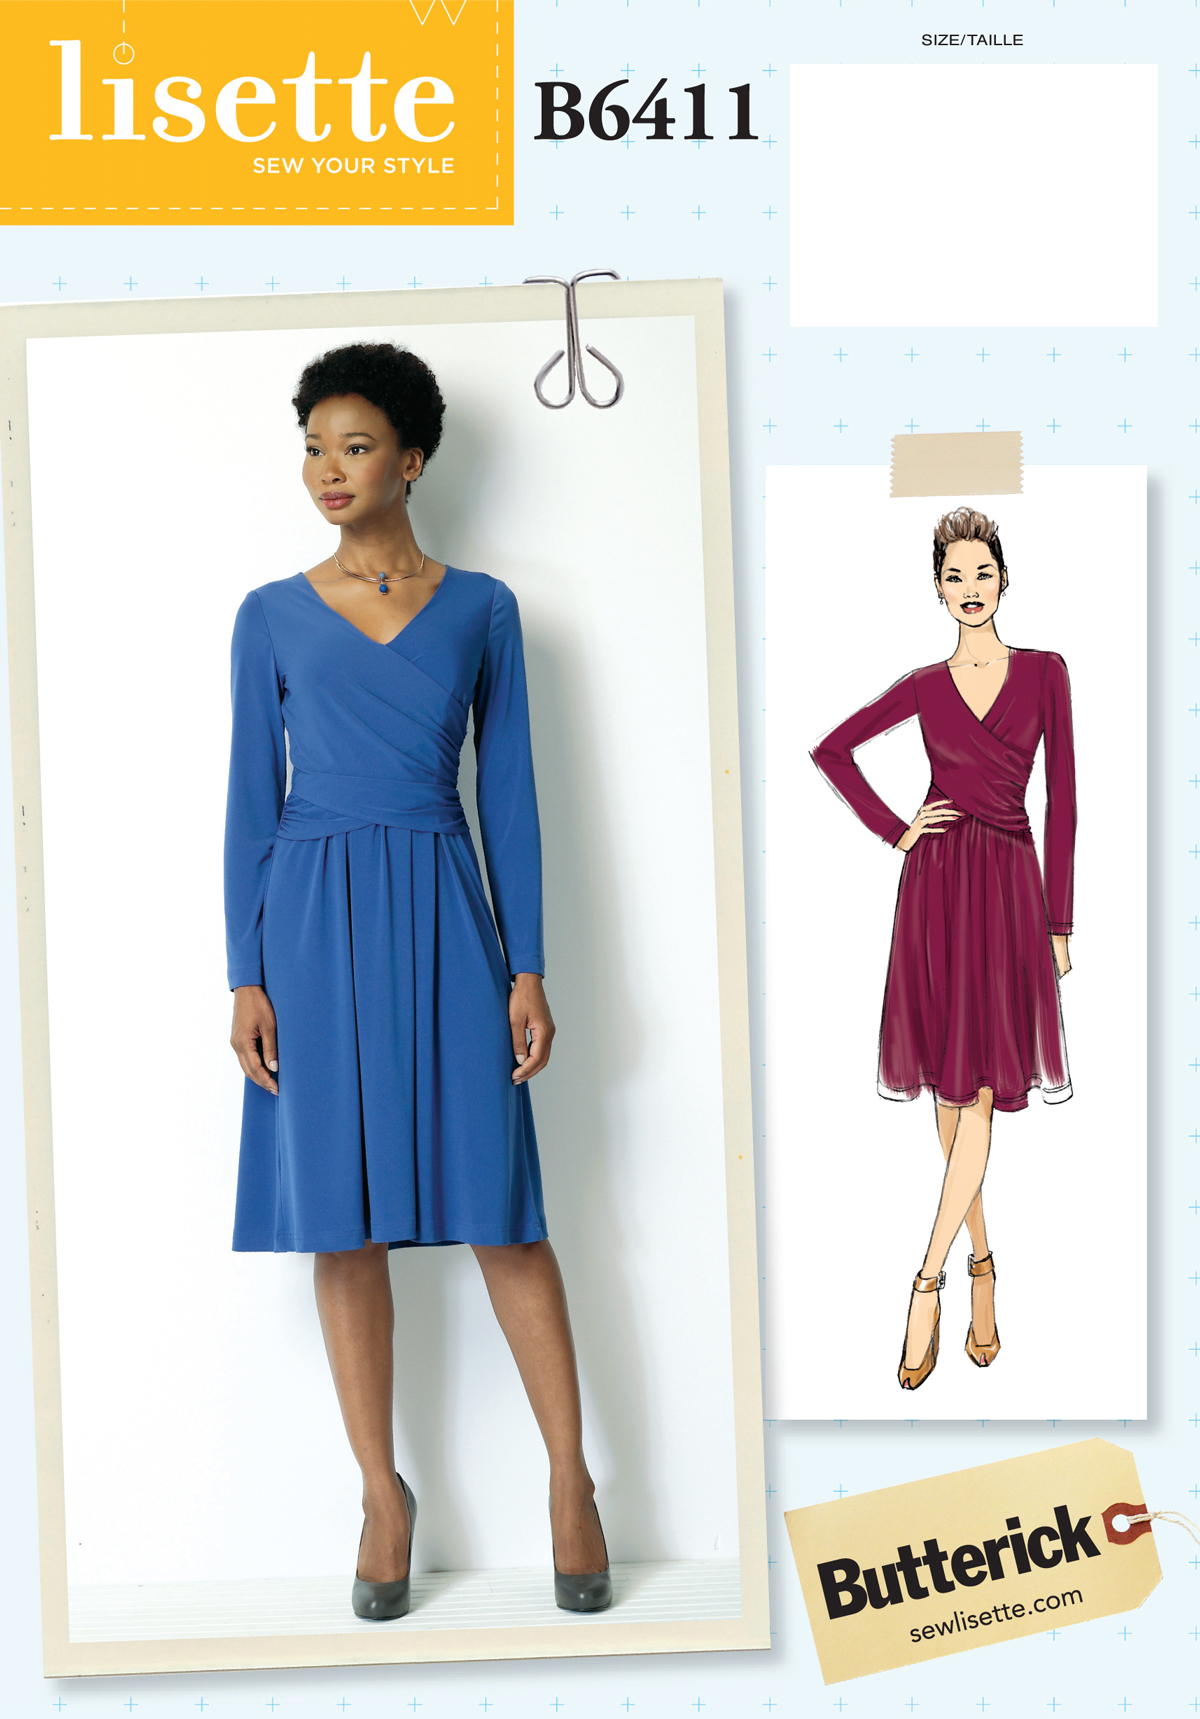 bfce6cac4 introducing the new lisette B6411 dress for butterick